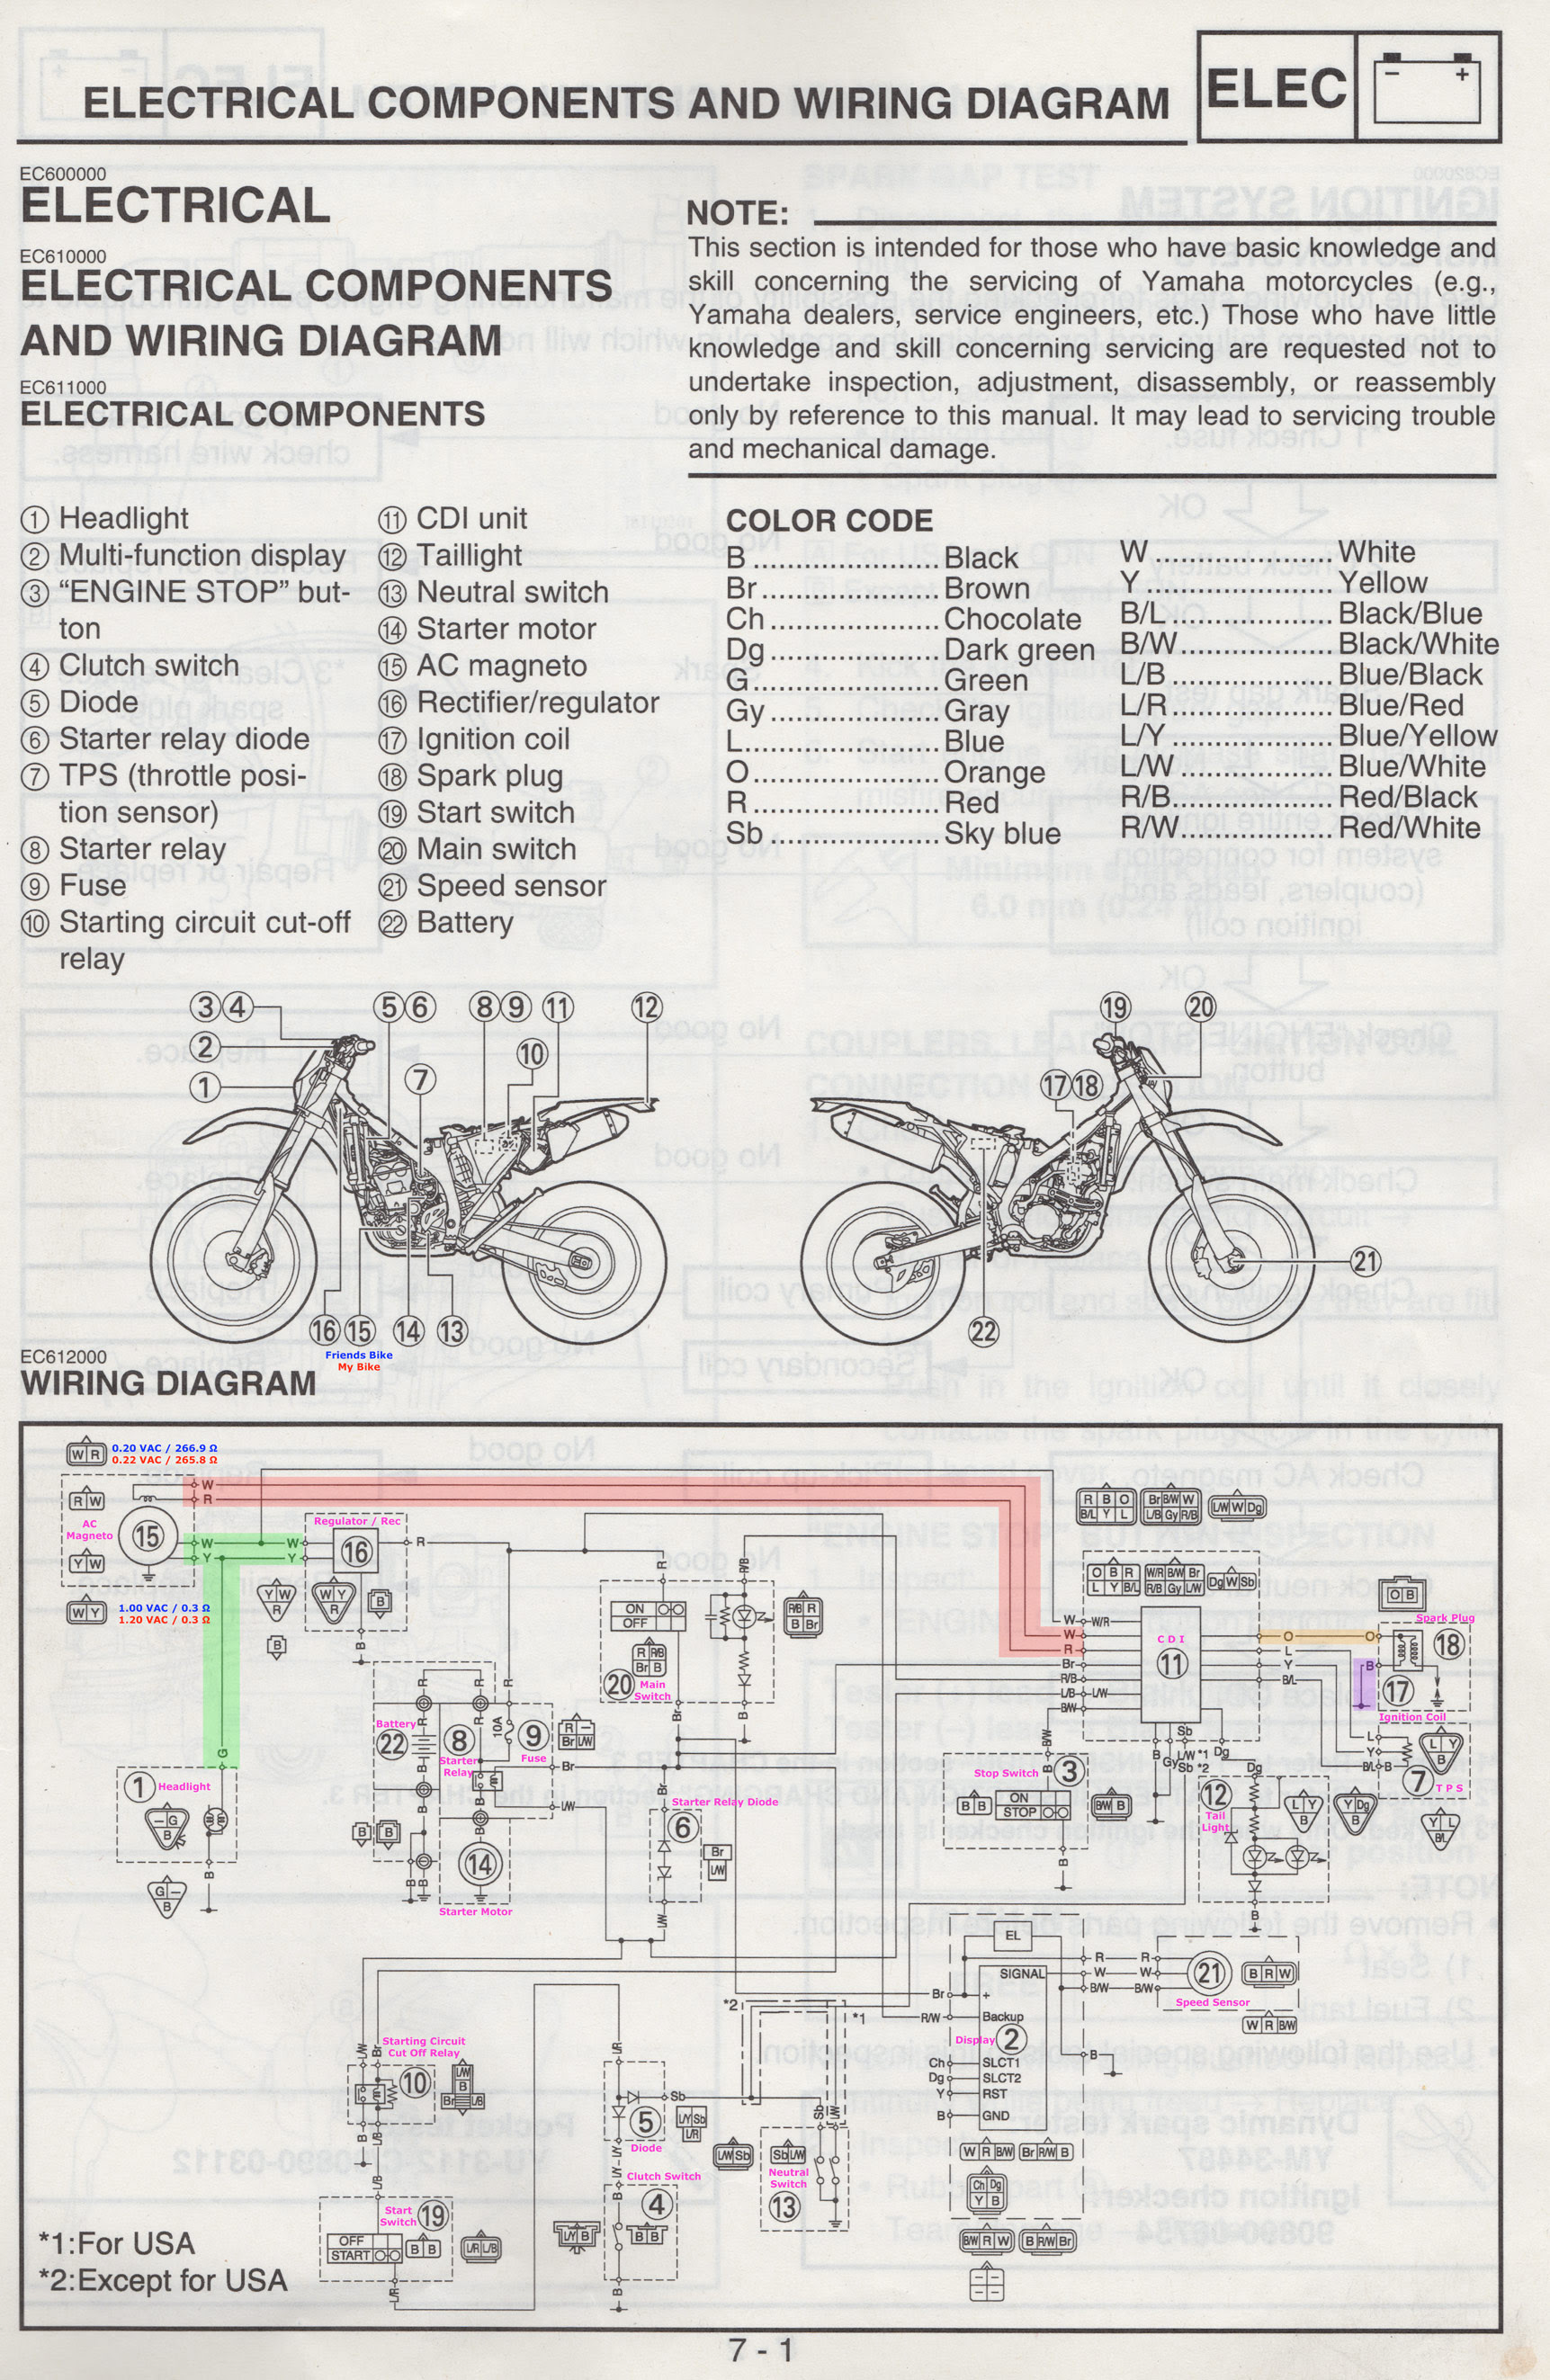 Advanced Electrical Help Wr450 No Spark Page 2 Adventure Rider